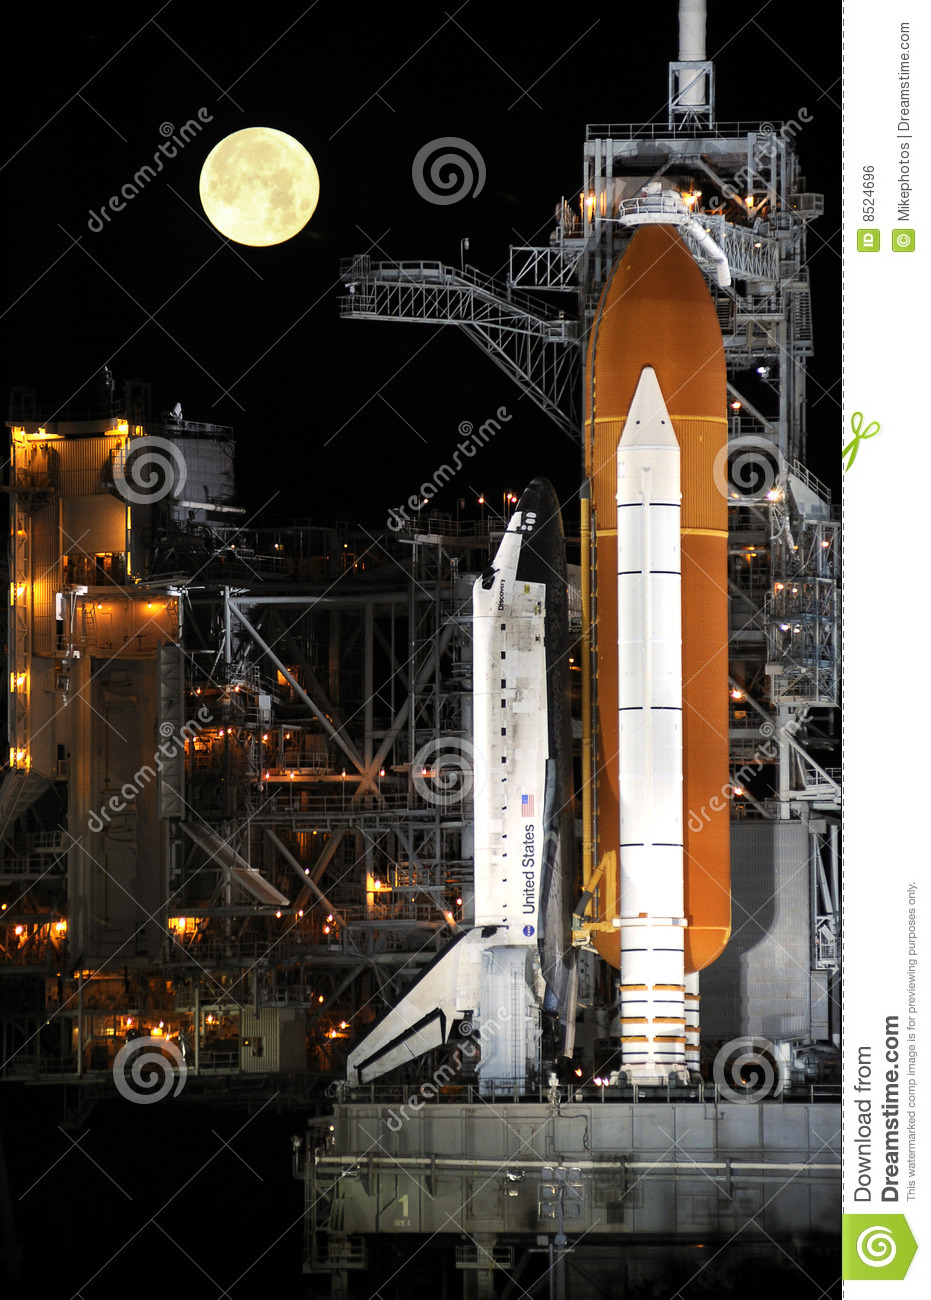 nasa shuttle facility asian singles Written by charles river editors, narrated by colin fluxman download the app and start listening to the space shuttle challenger disaster: the history and legacy of nasa's most notorious tragedy today - free with a 30 day trial.